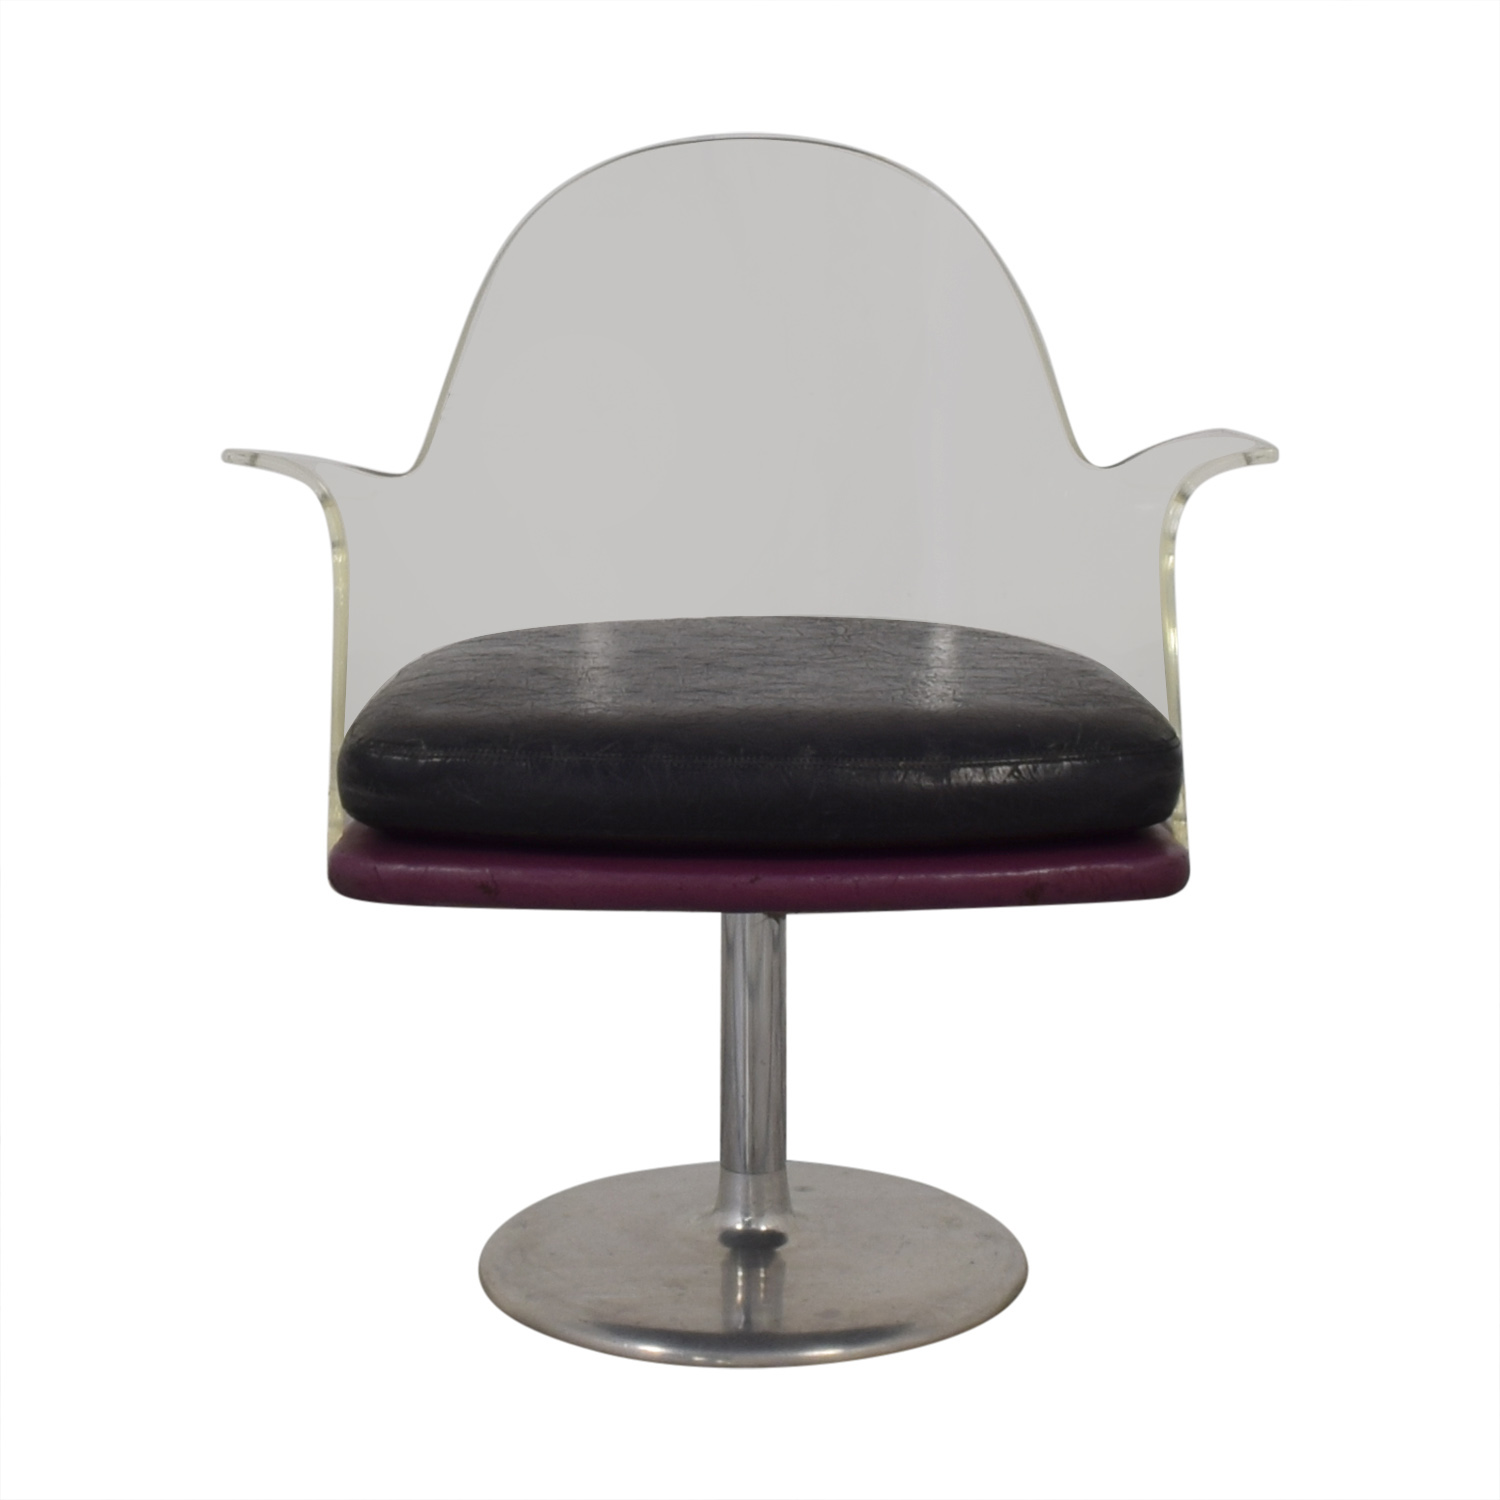 Vladimir Kagan Vladimir Kagan Swivel Armchair coupon